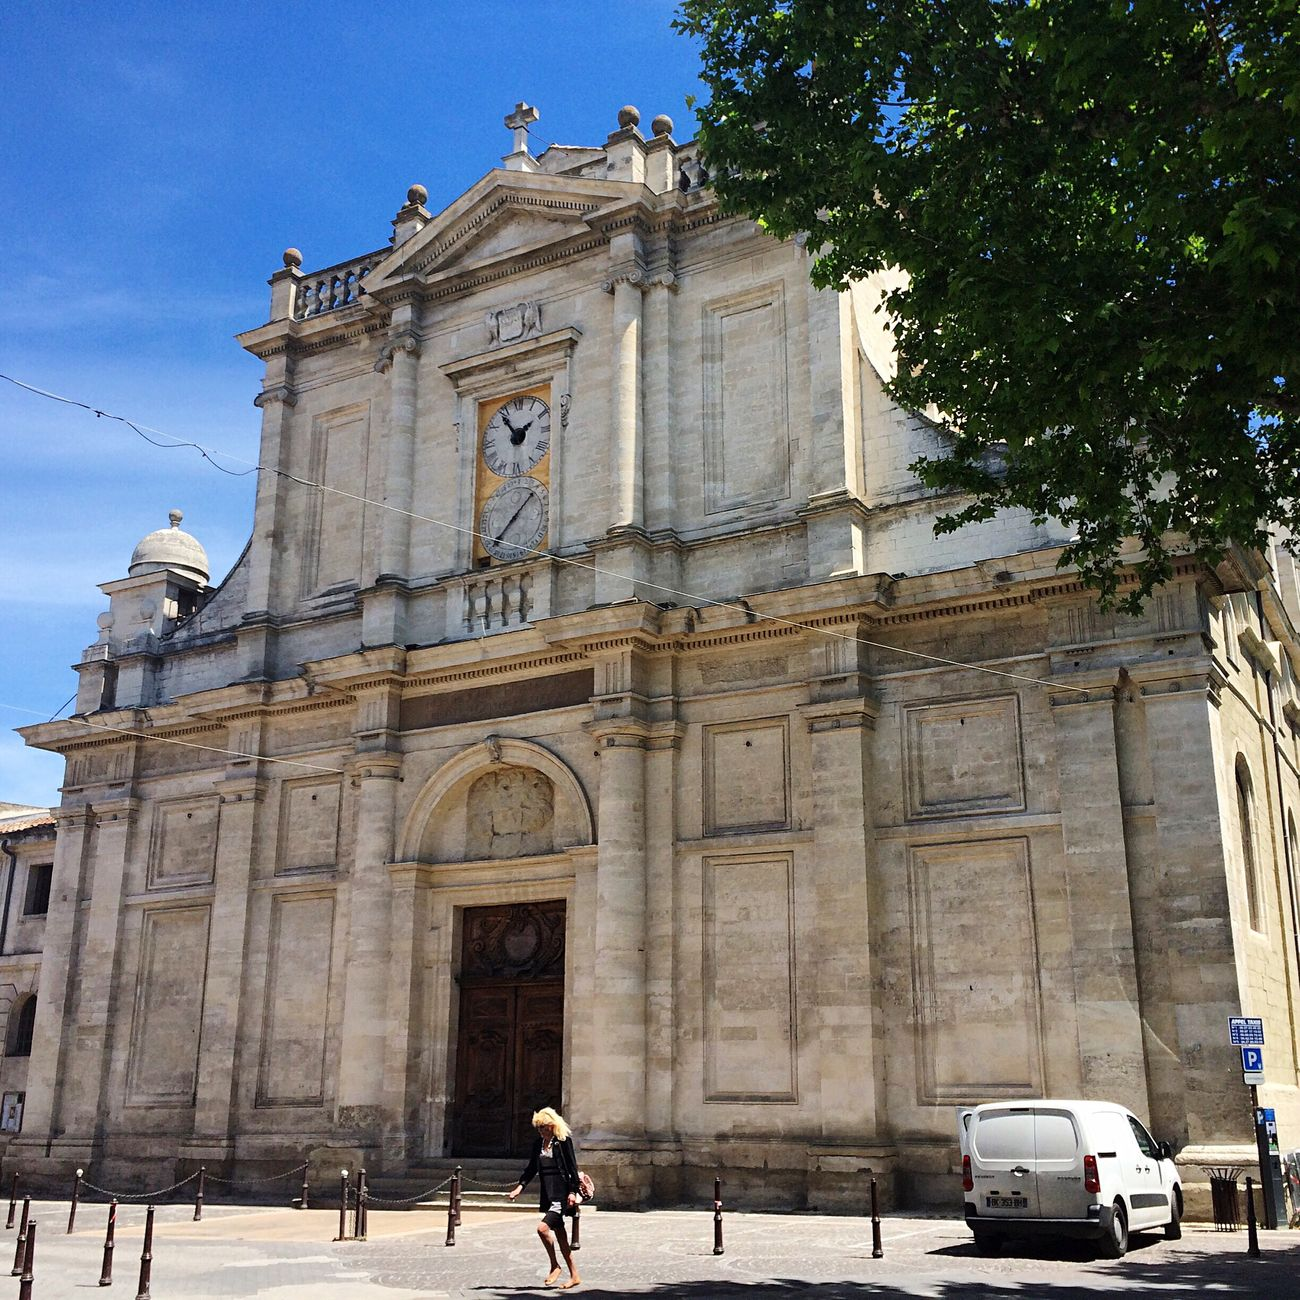 Church Architecture Provence Taking Photos Patrimoine De France Photography Downtown Streetphotography Street View Jésuite Architecture Monument Historique Baroque Style